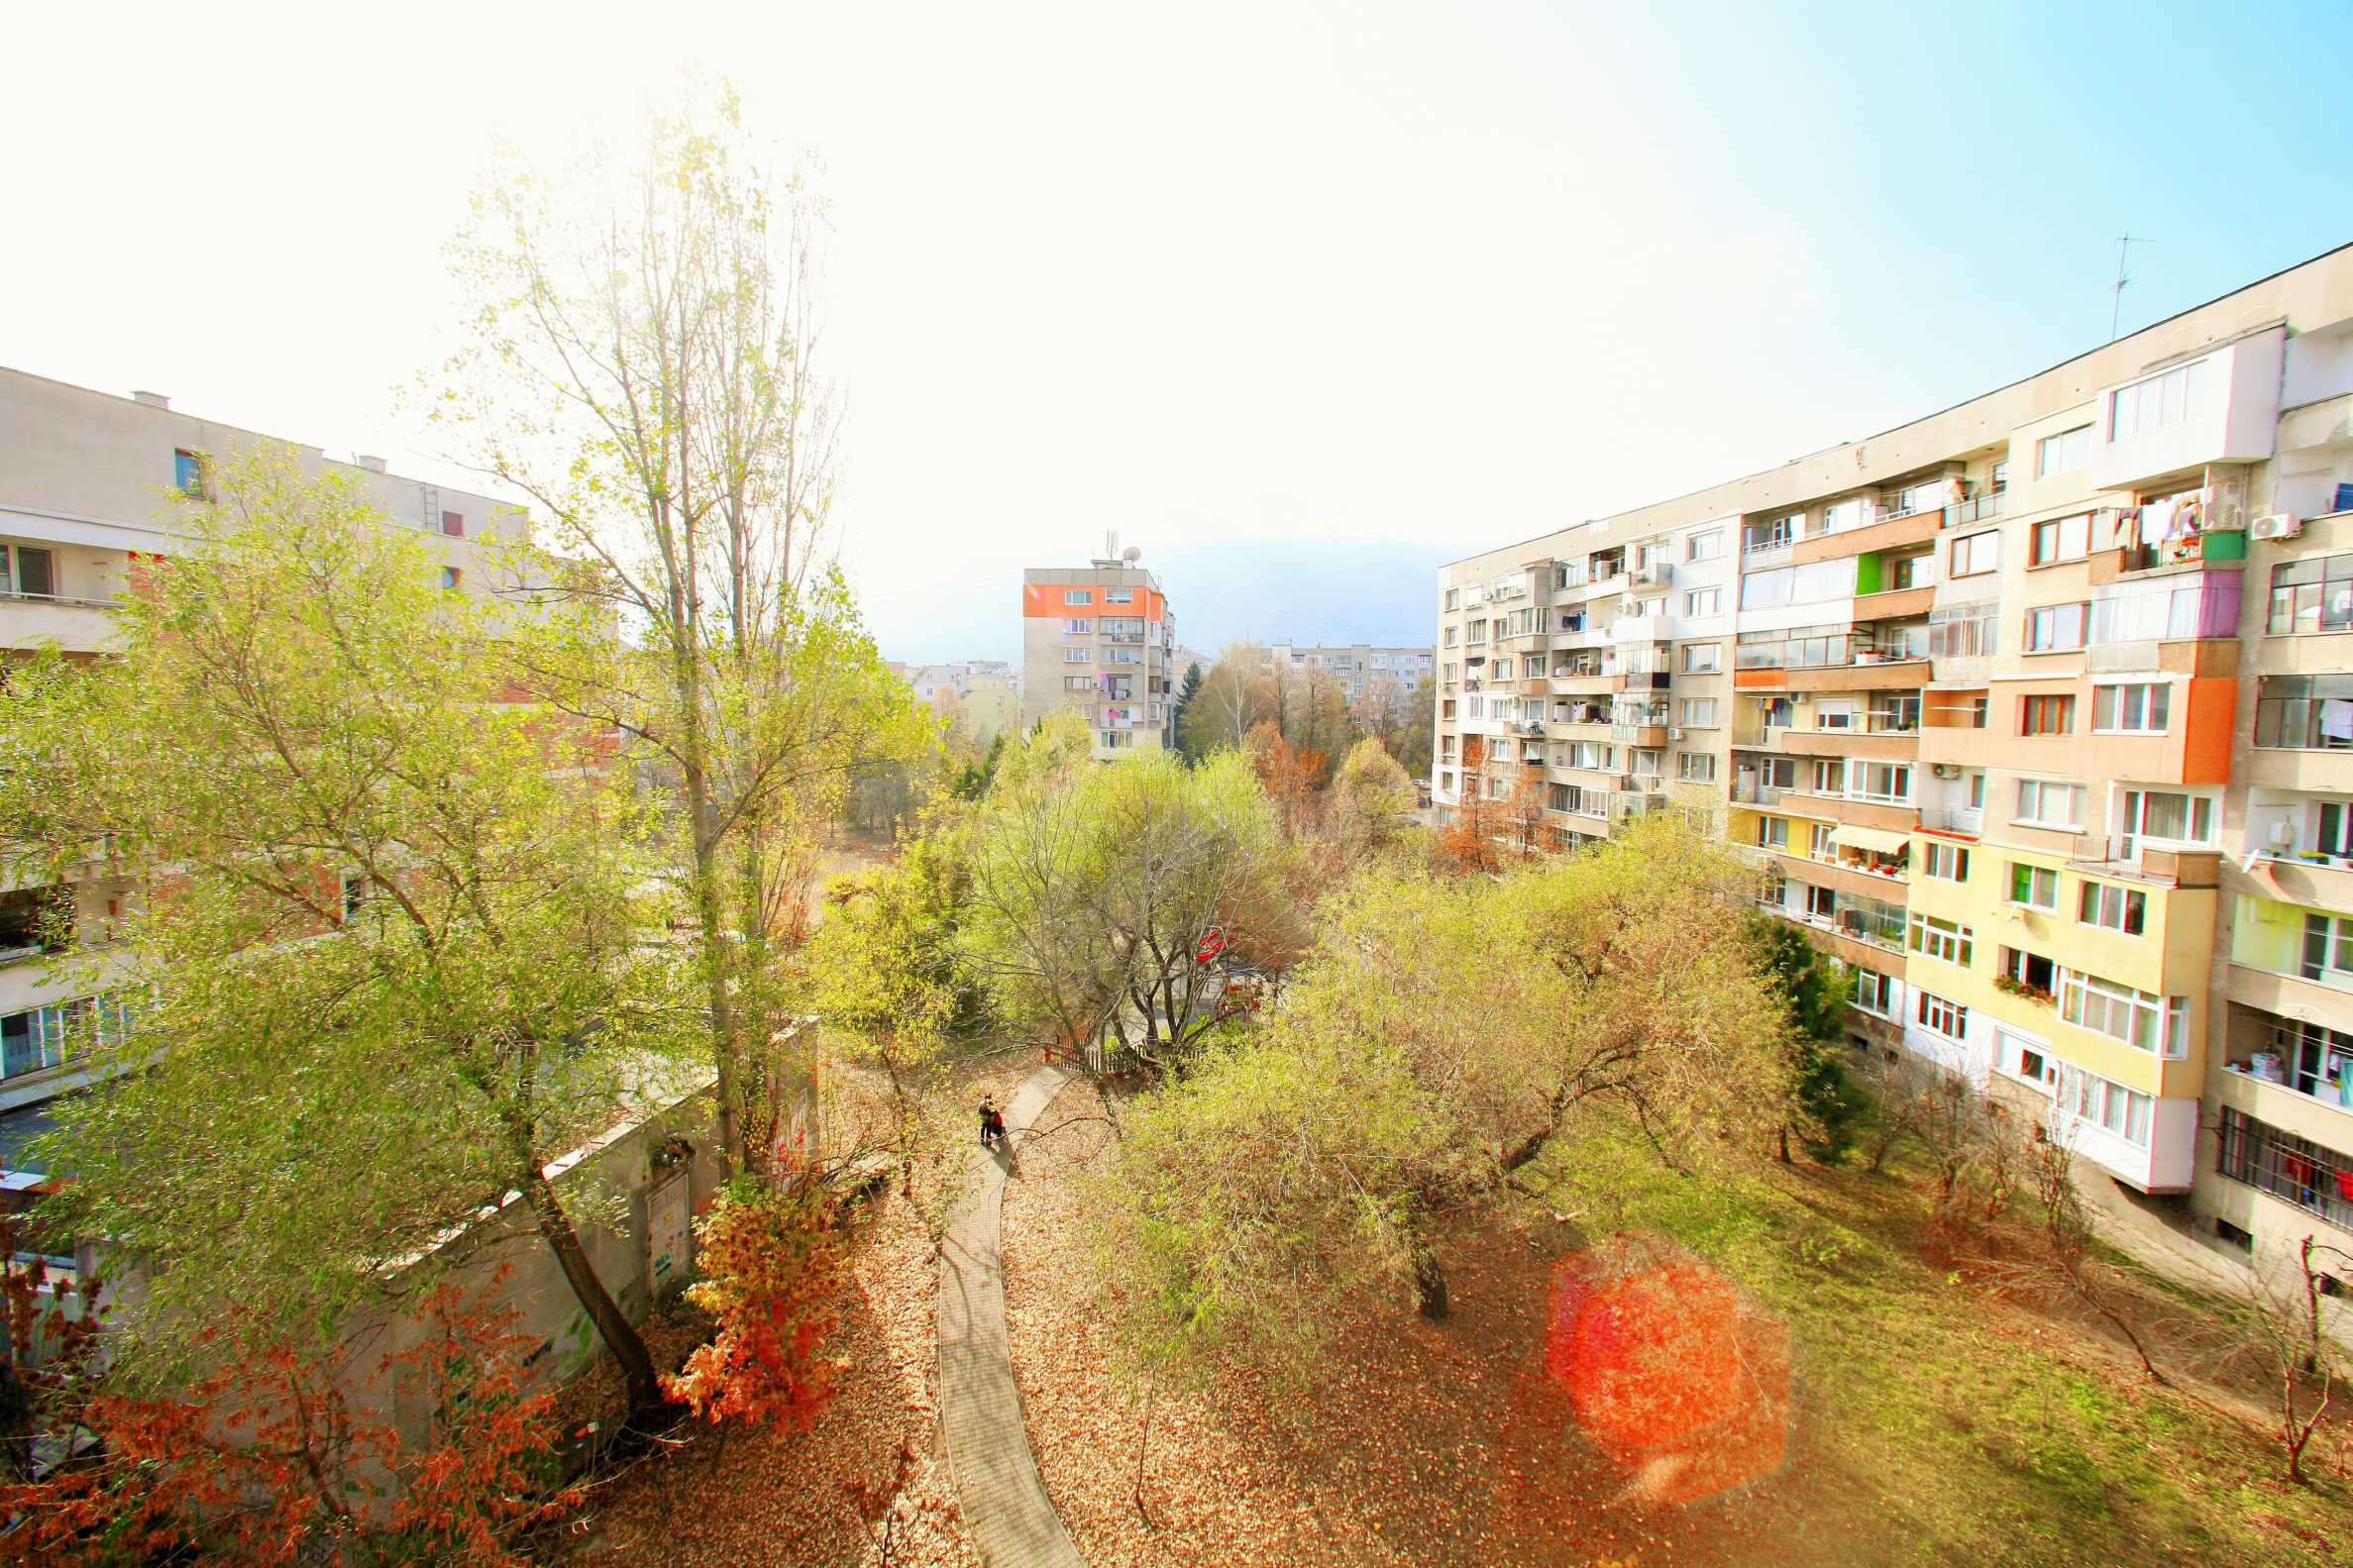 2-bedroom apartment for sale in Sofia, Bulgaria - Sales - 2-bedroom apartment.